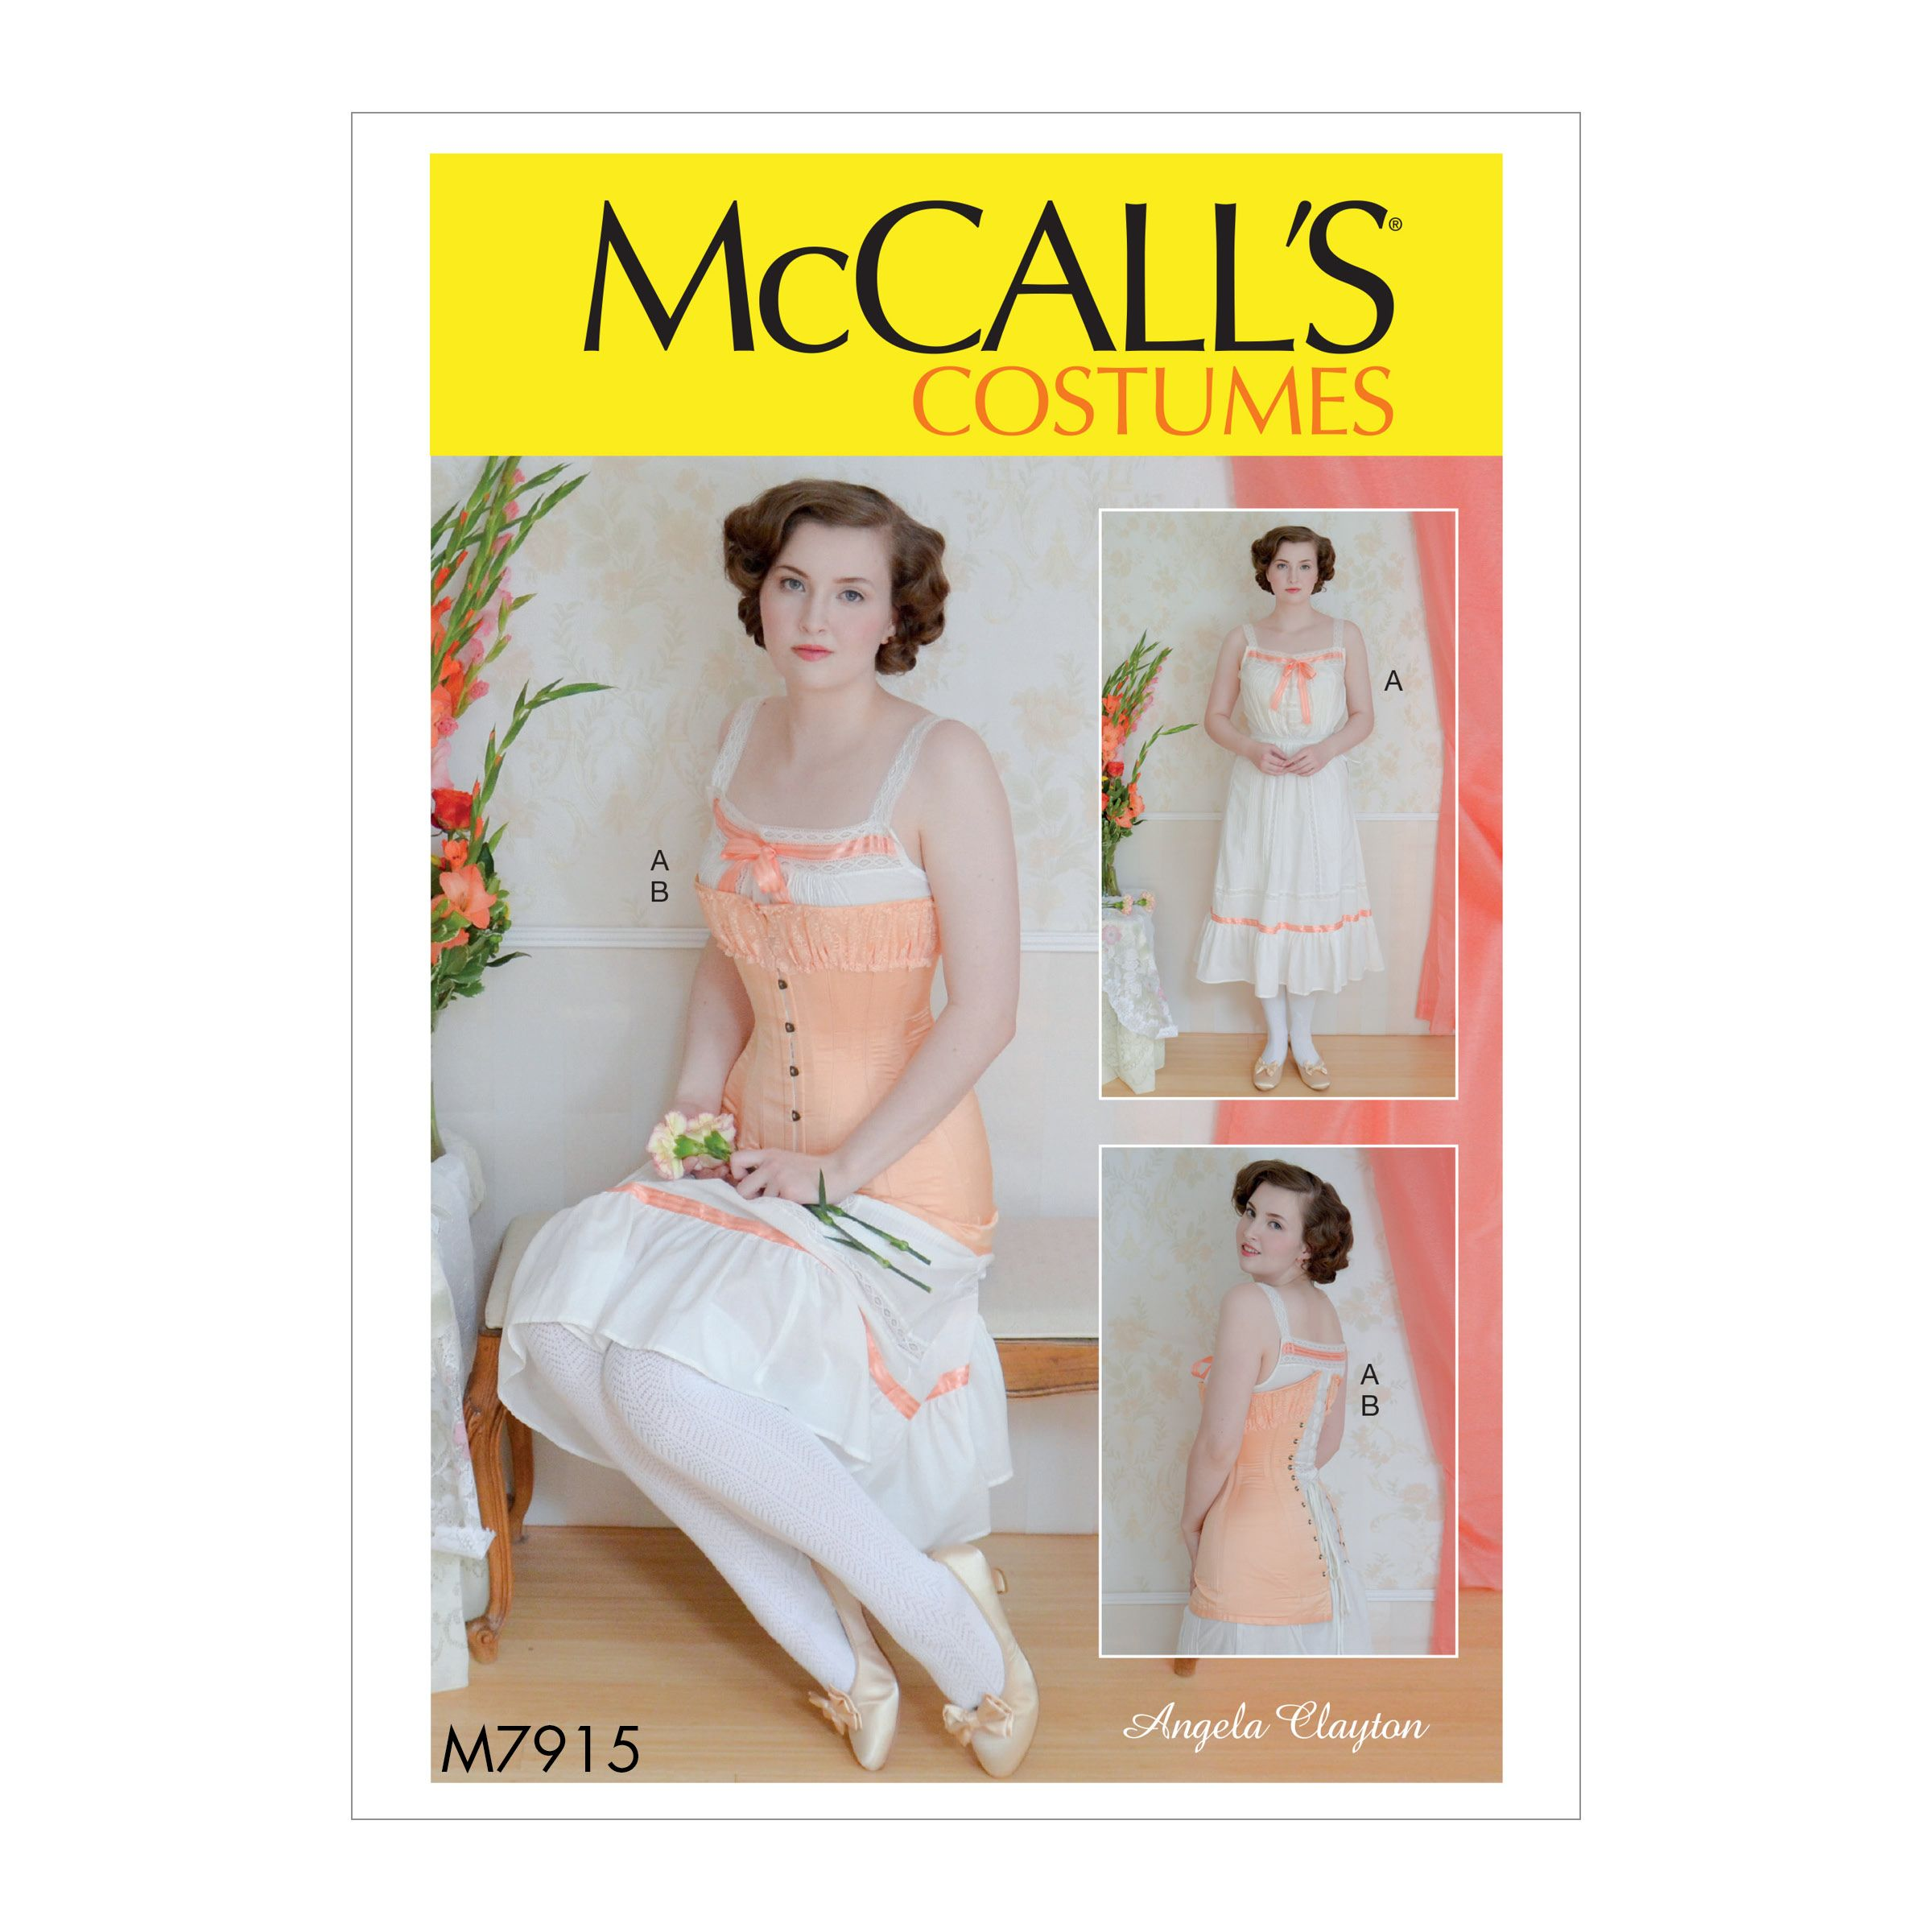 McCall/'s 7555 Misses/' Costume  Sewing Pattern